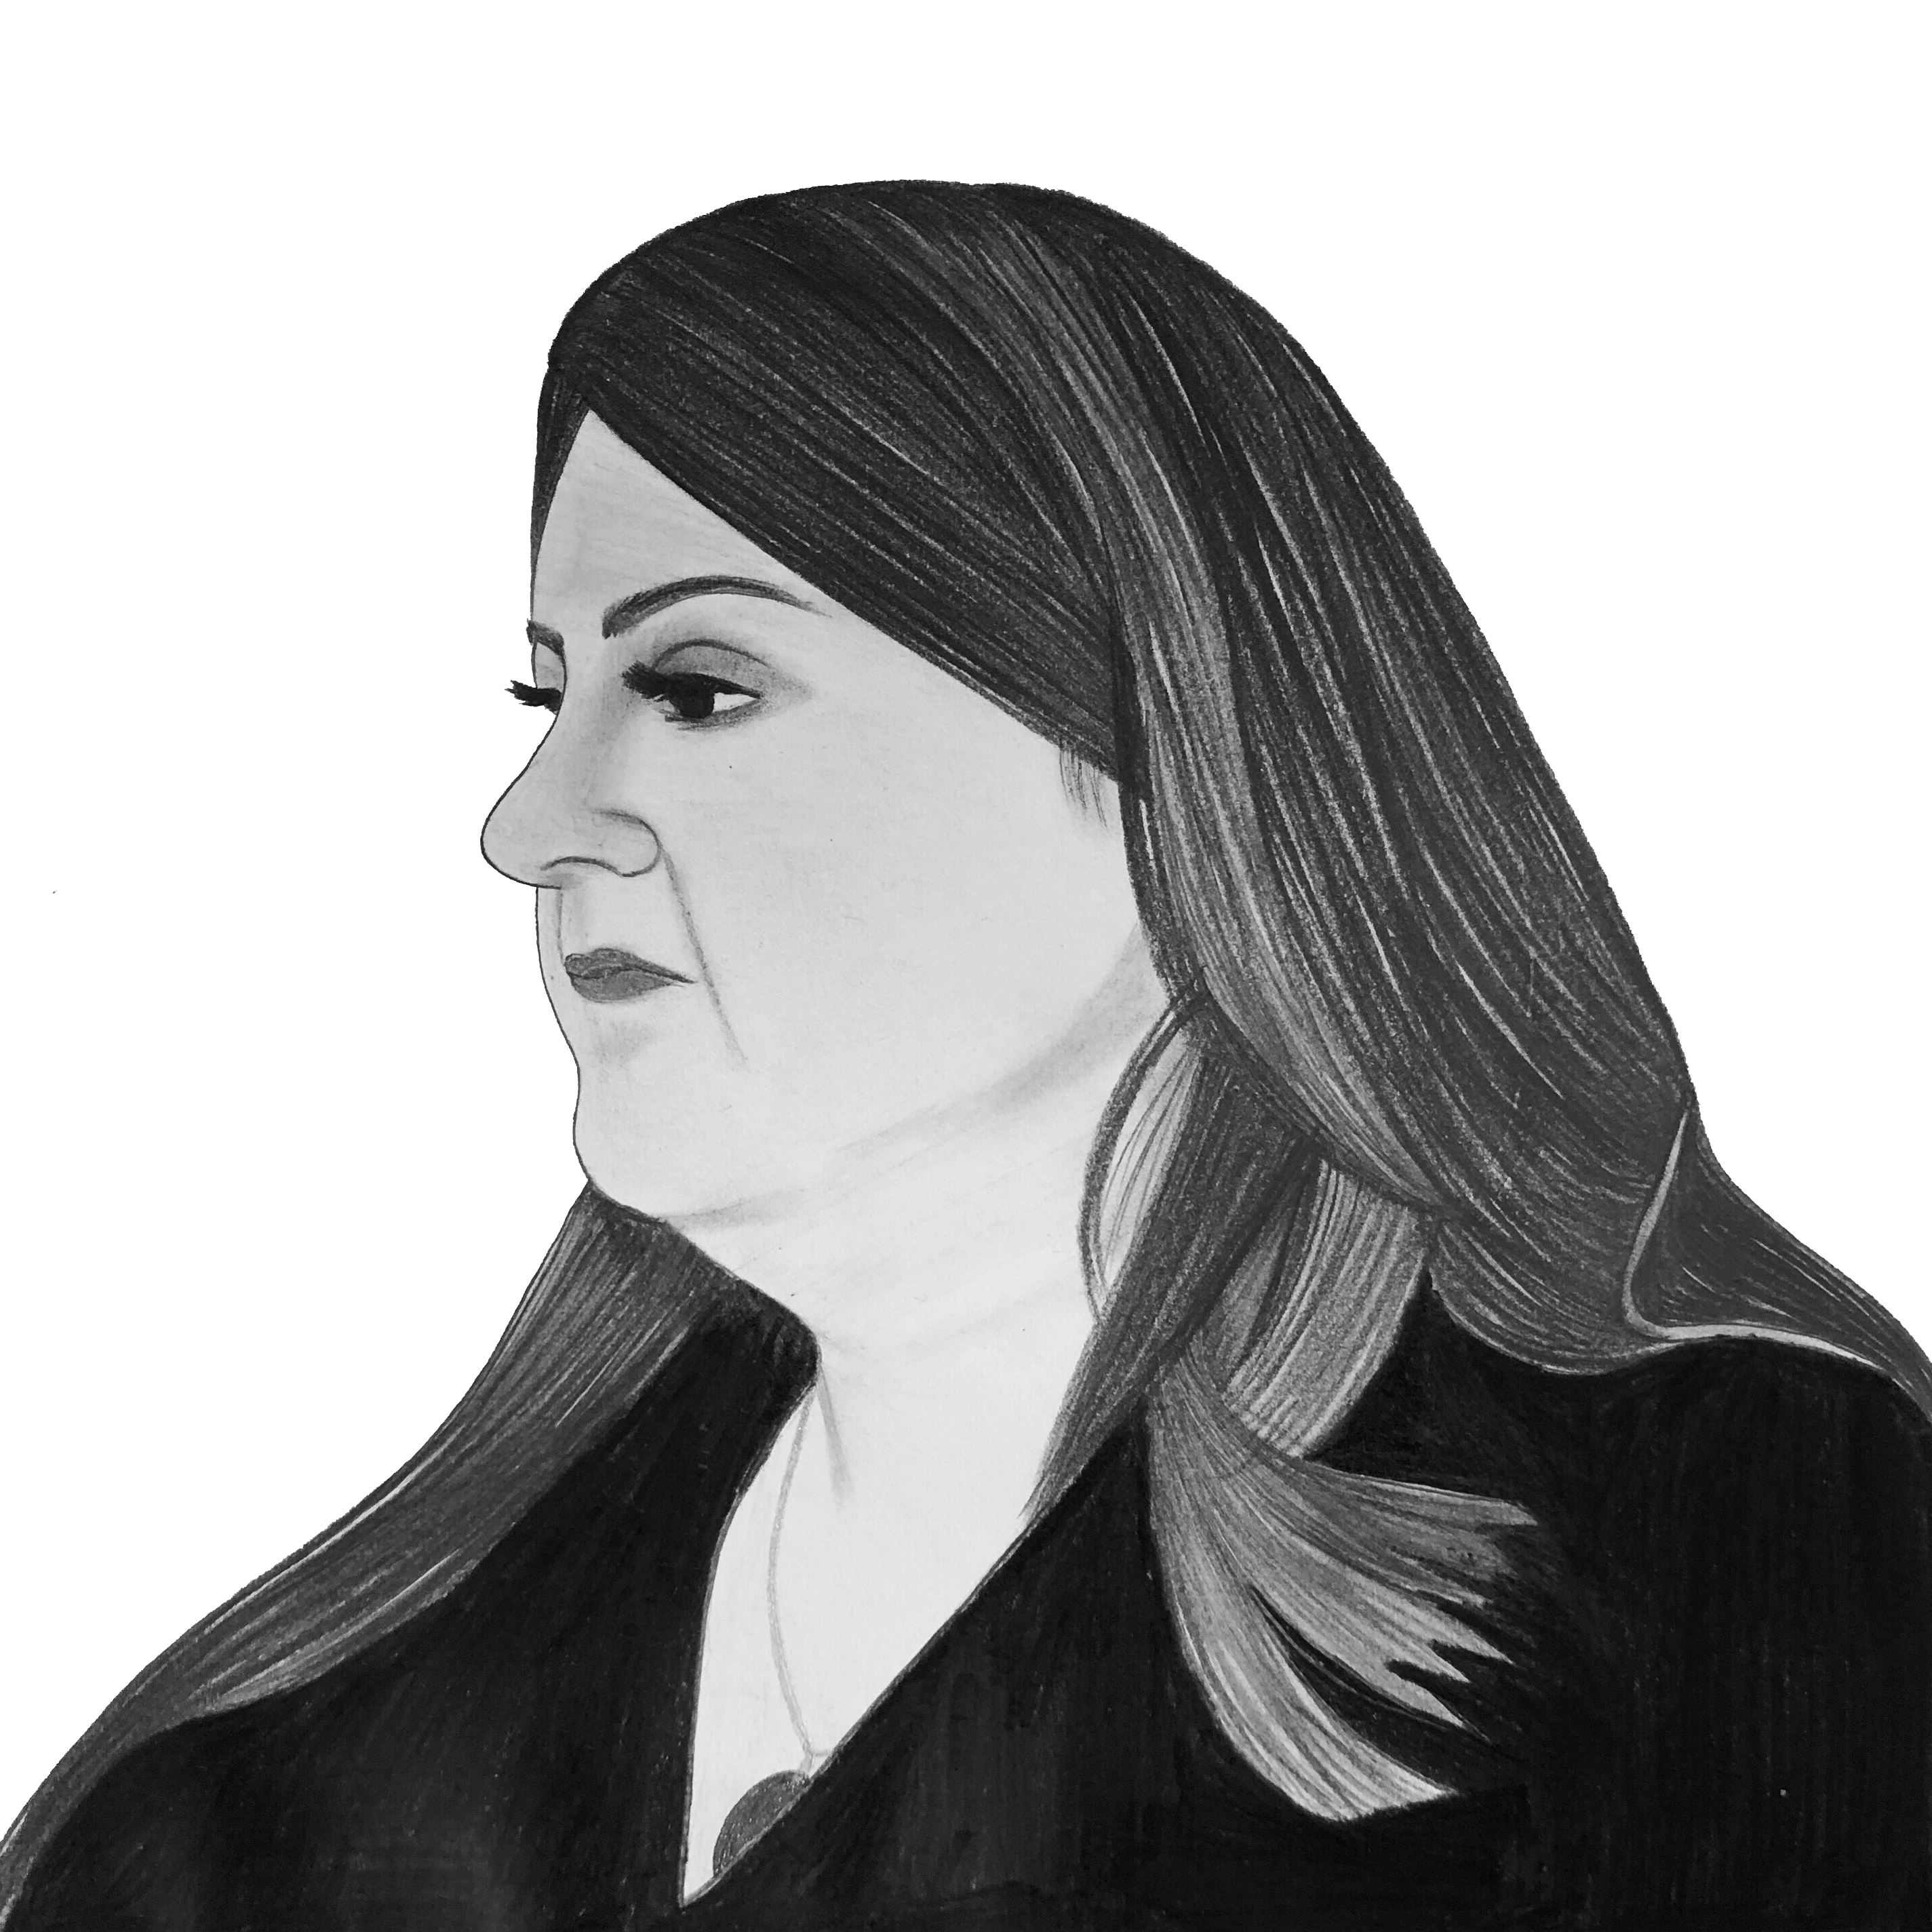 Sketch for prolifeprofiles.com/abby-johnson